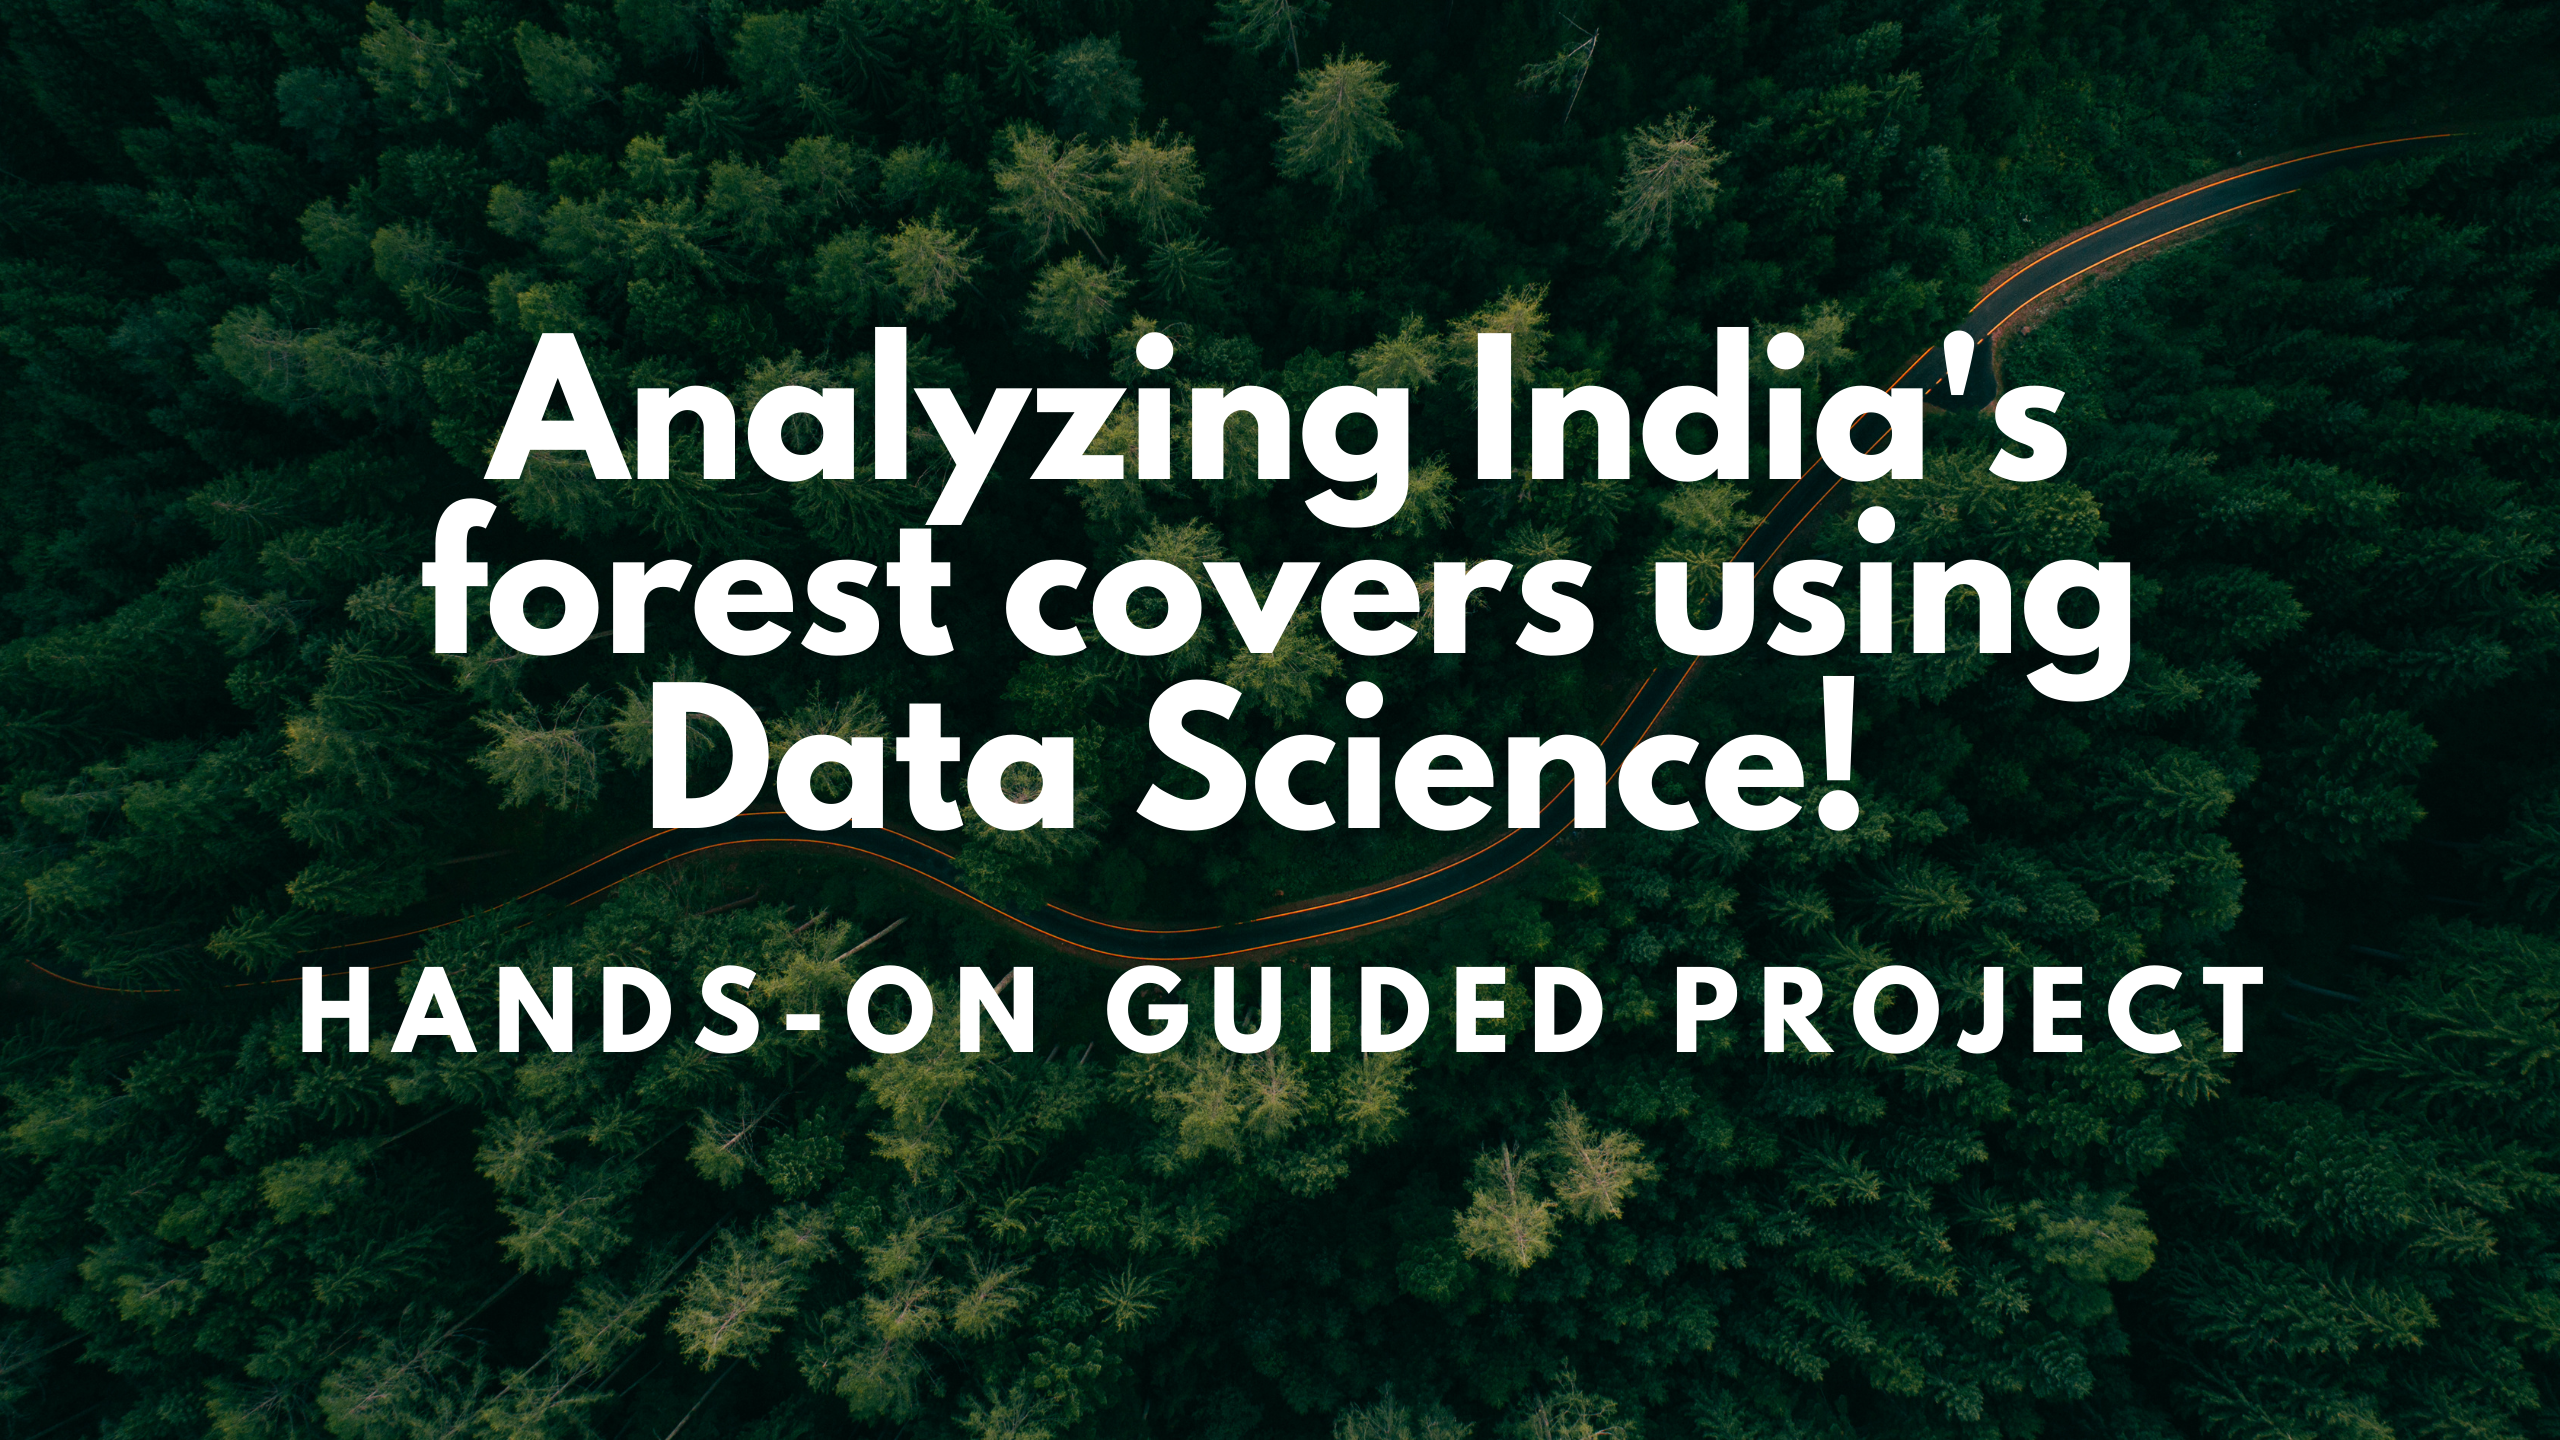 Analyzing India's Forest covers using Data Science